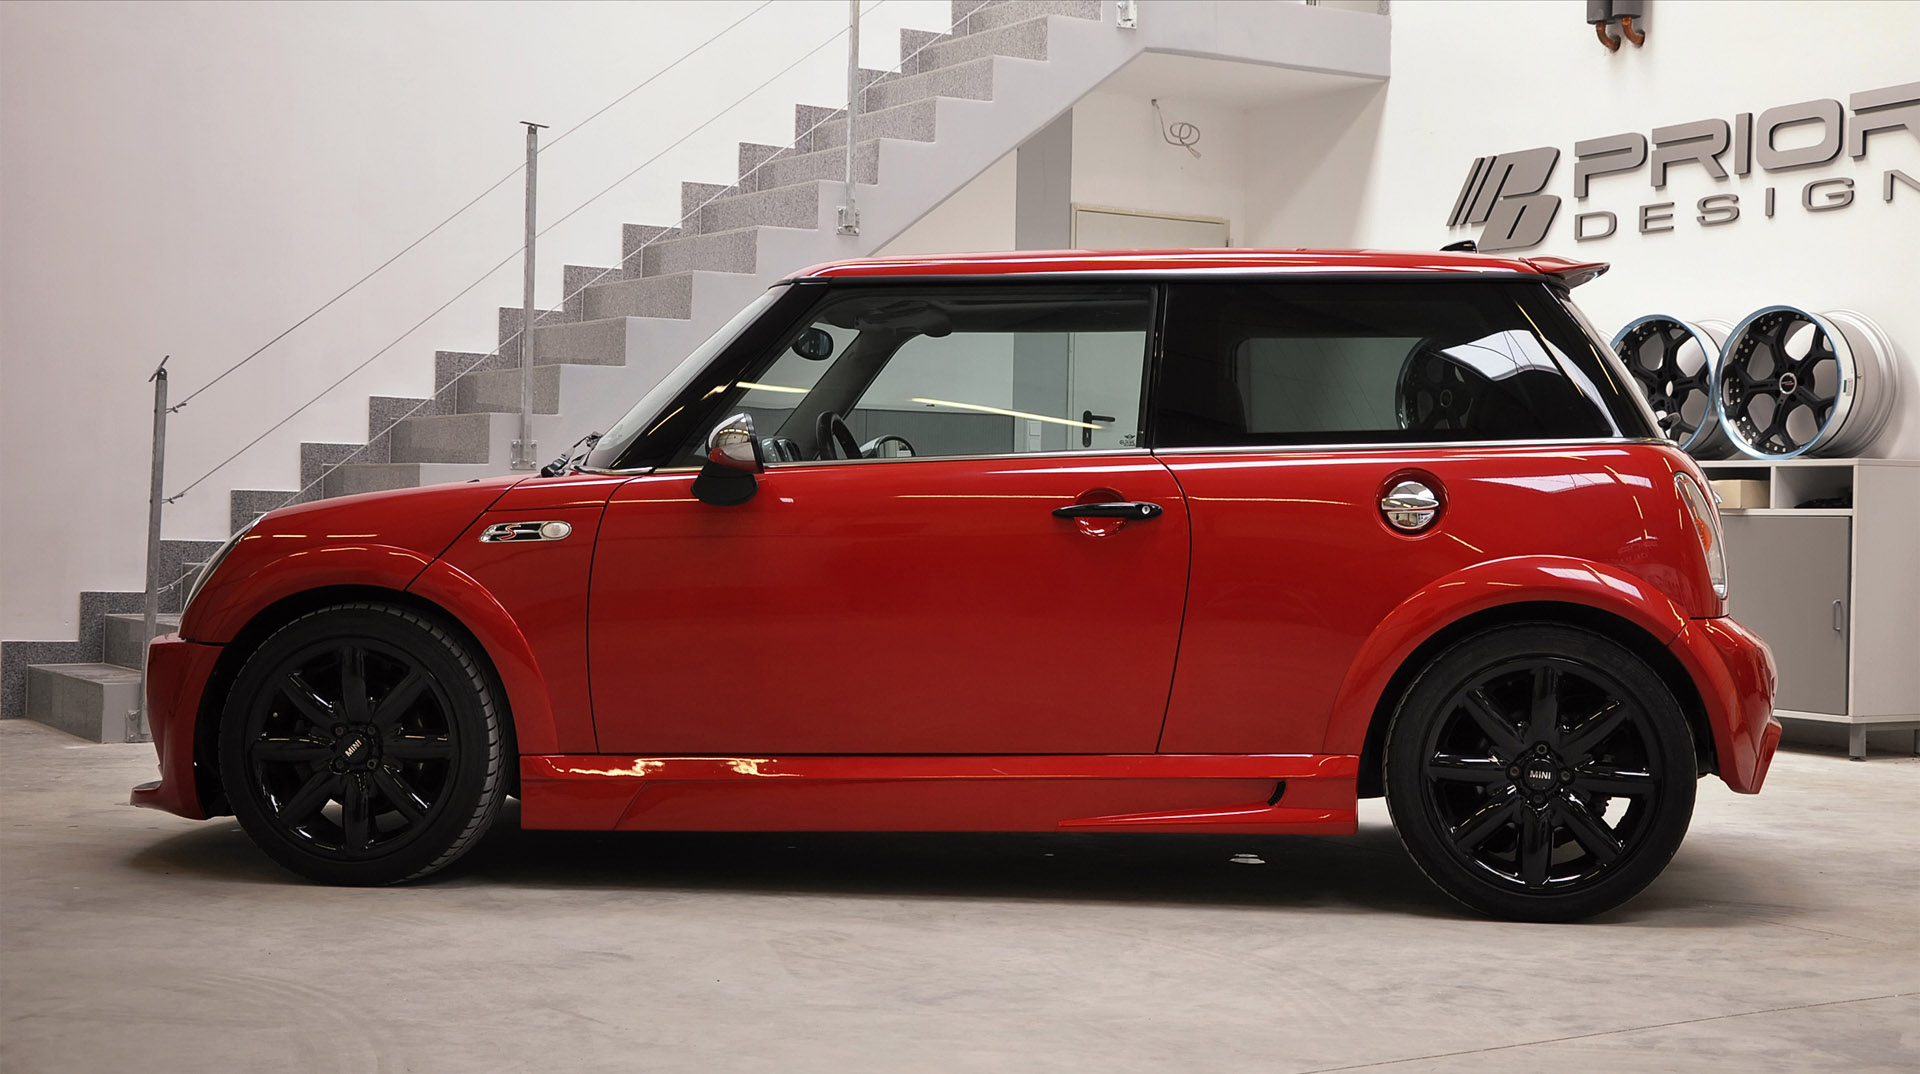 Car Wallpaper Gallery Prior Design Mini Cooper S Bodykit Picture 23746